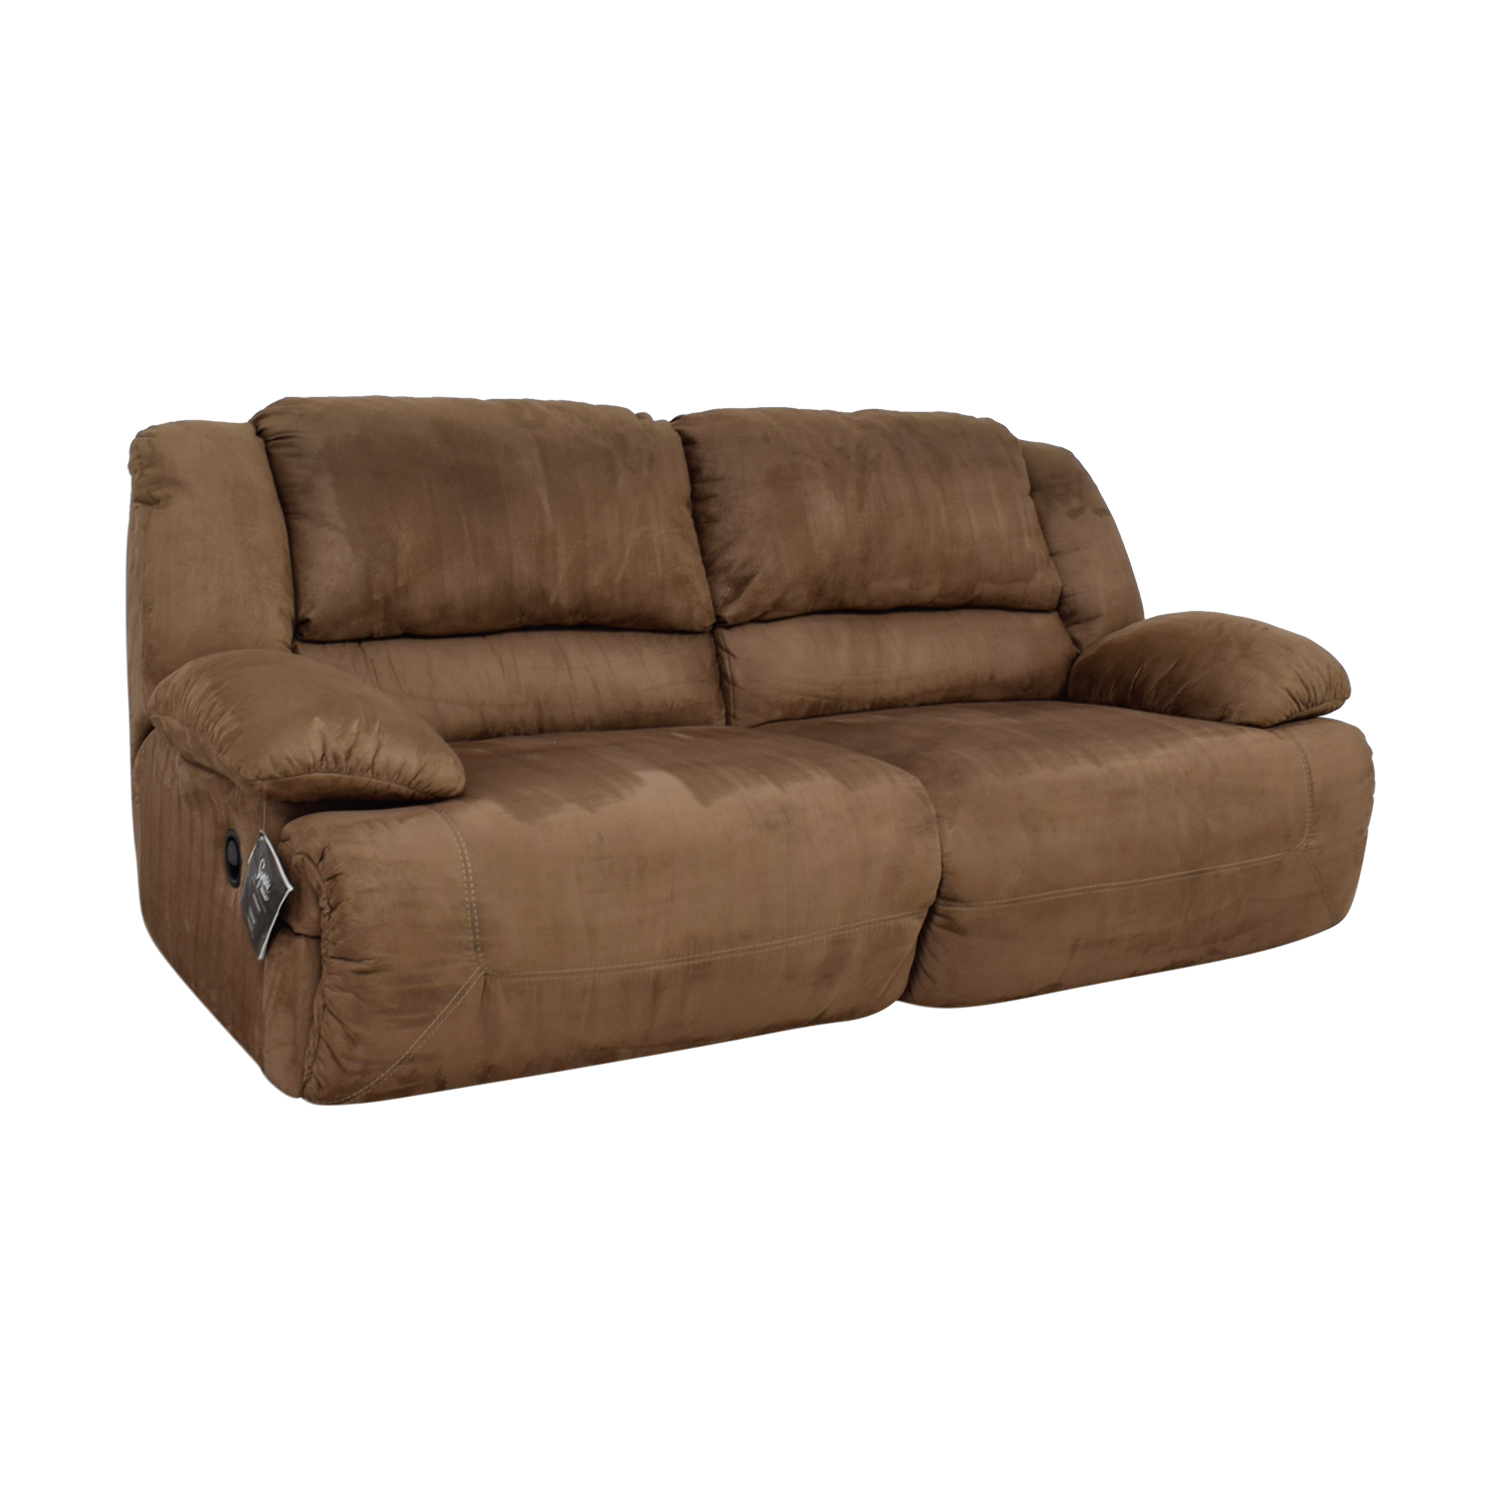 Ashley Furniture Mocha Reclining Sofa Used Jpg 1500x1500